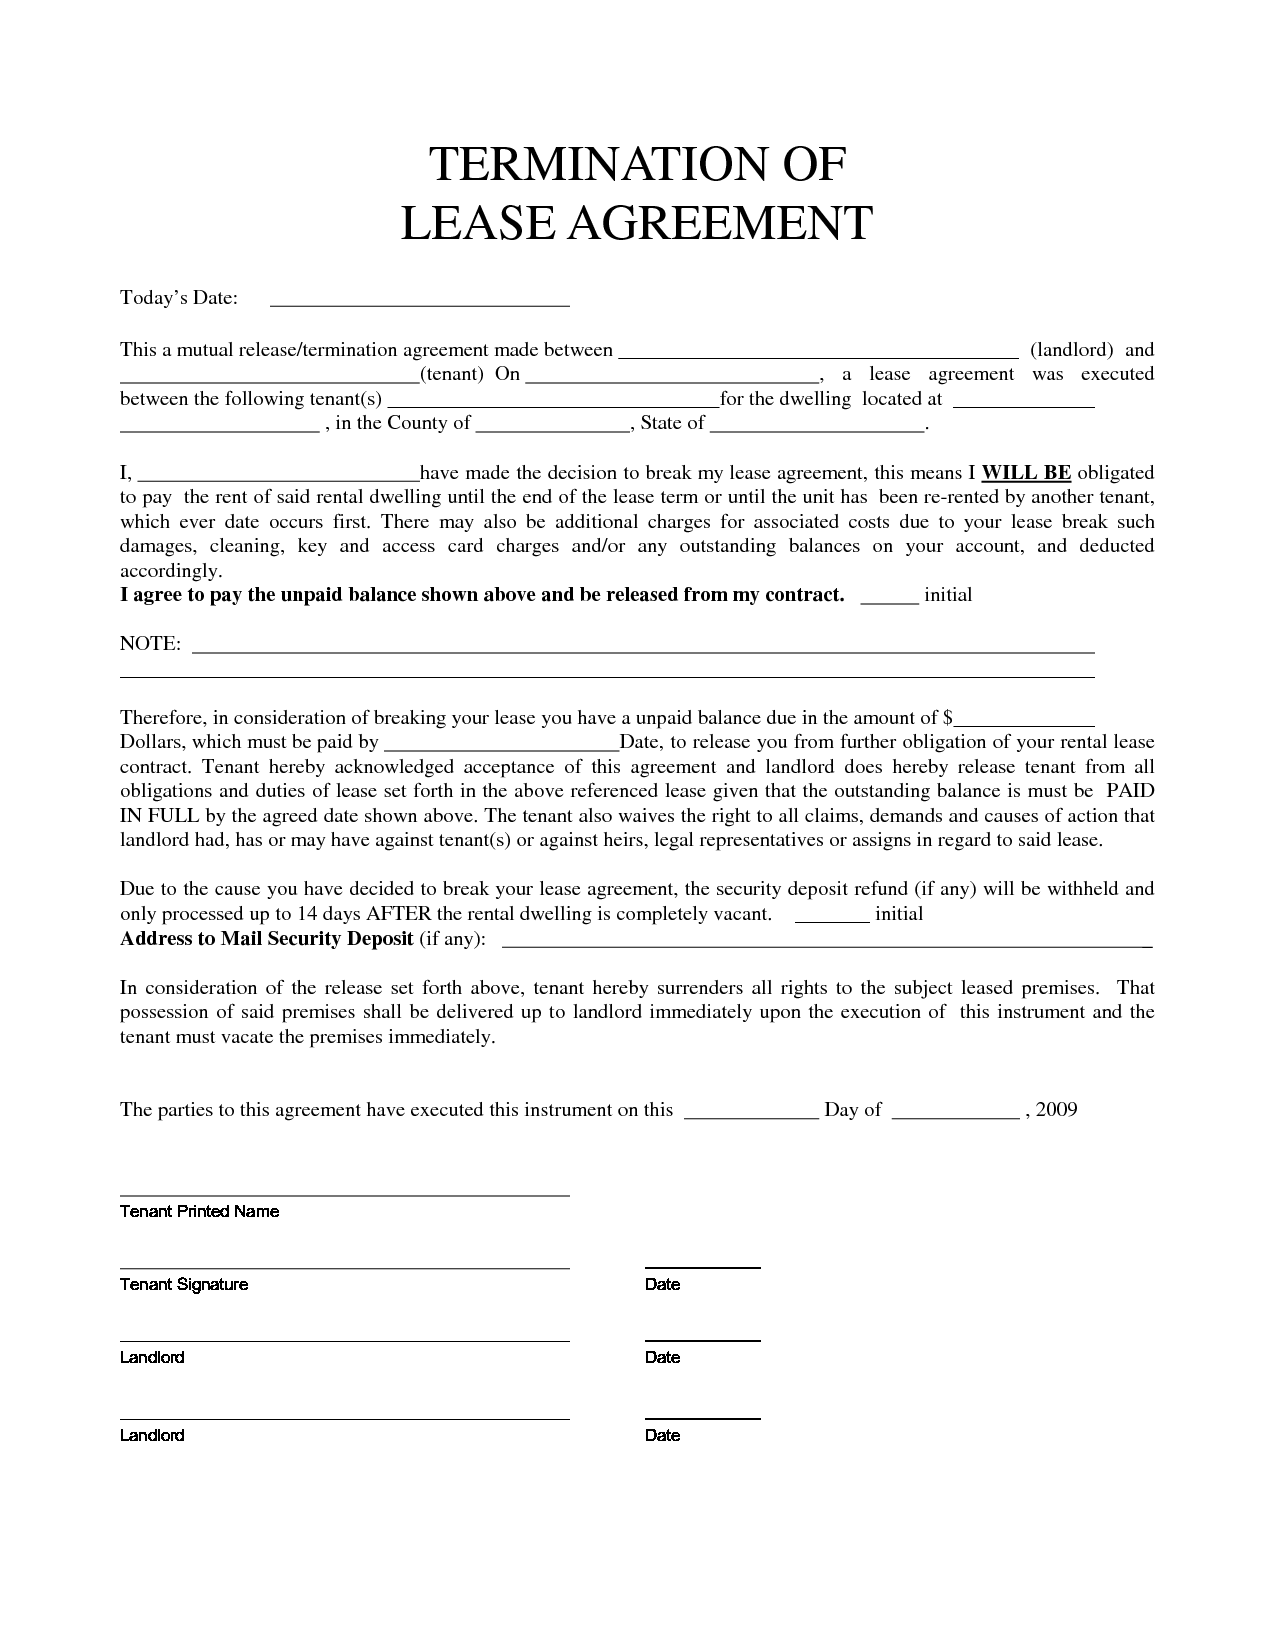 personal property rental agreement forms property rentals direct termination of lease agreement form